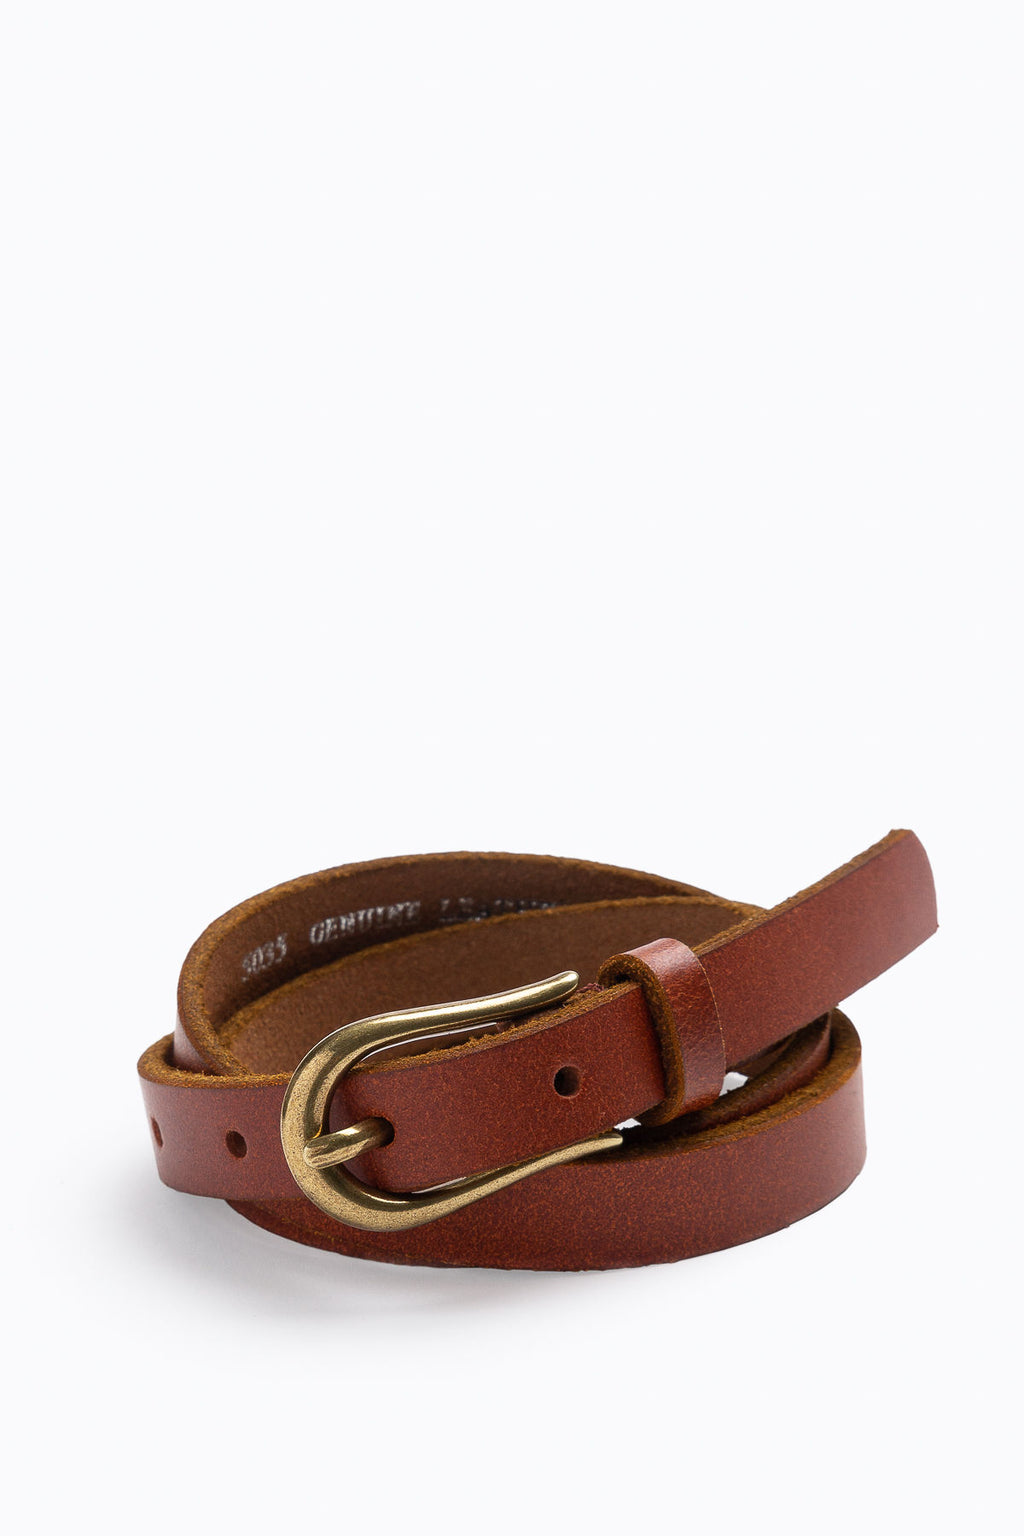 Basic Skinny Belt with Simple Buckle in Tan